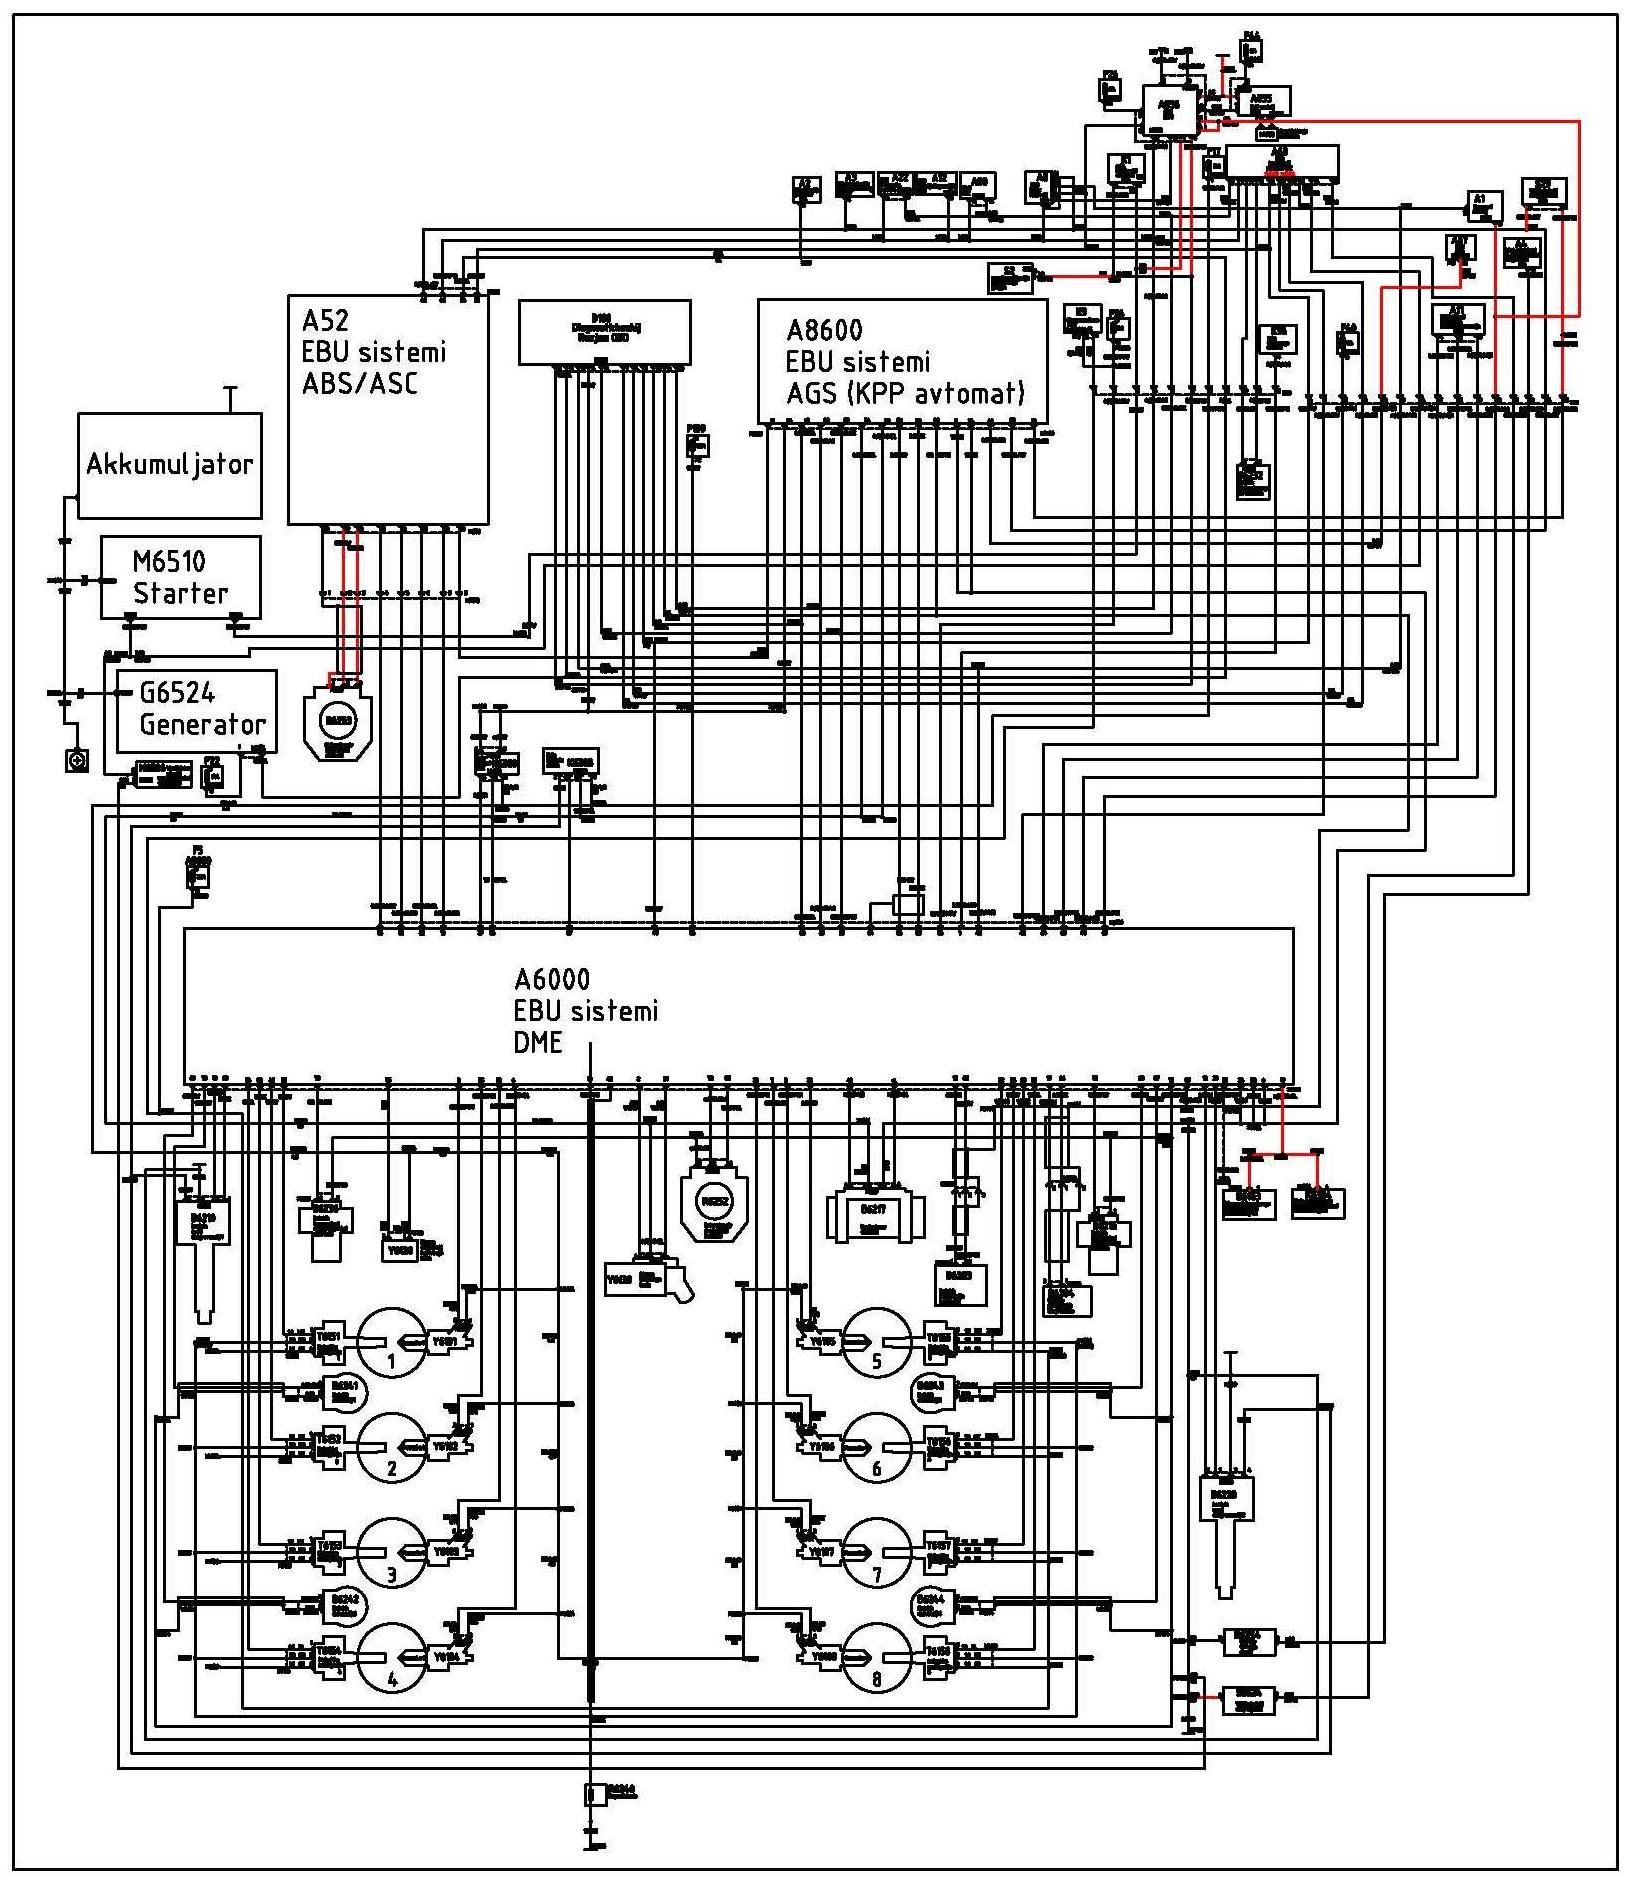 bmw wds wiring diagrams system bmw image wiring bmw wds wiring diagrams system bmw auto wiring diagram schematic on bmw wds wiring diagrams system